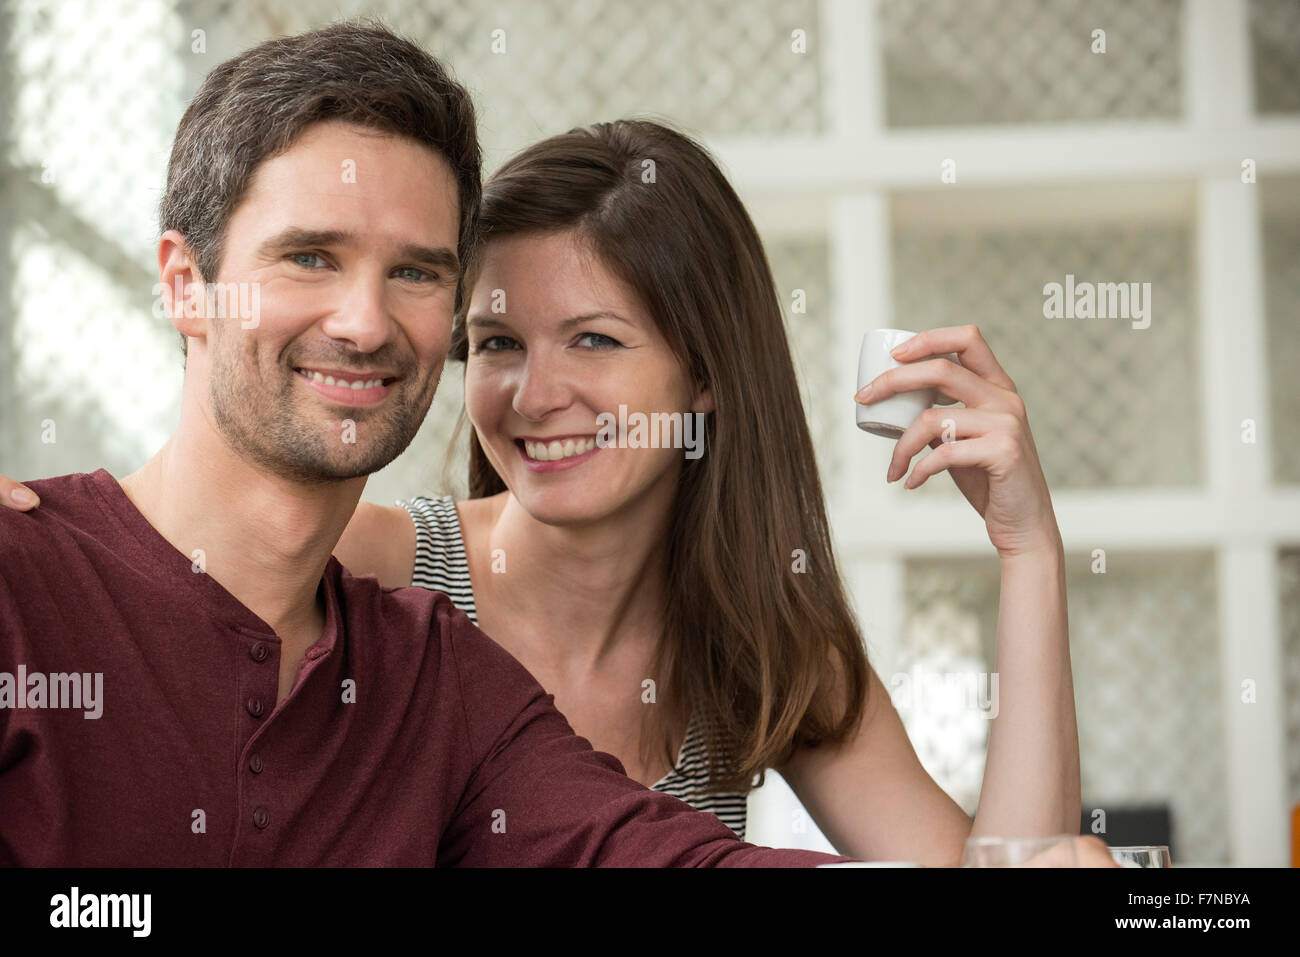 Couple at cafe, portrait - Stock Image